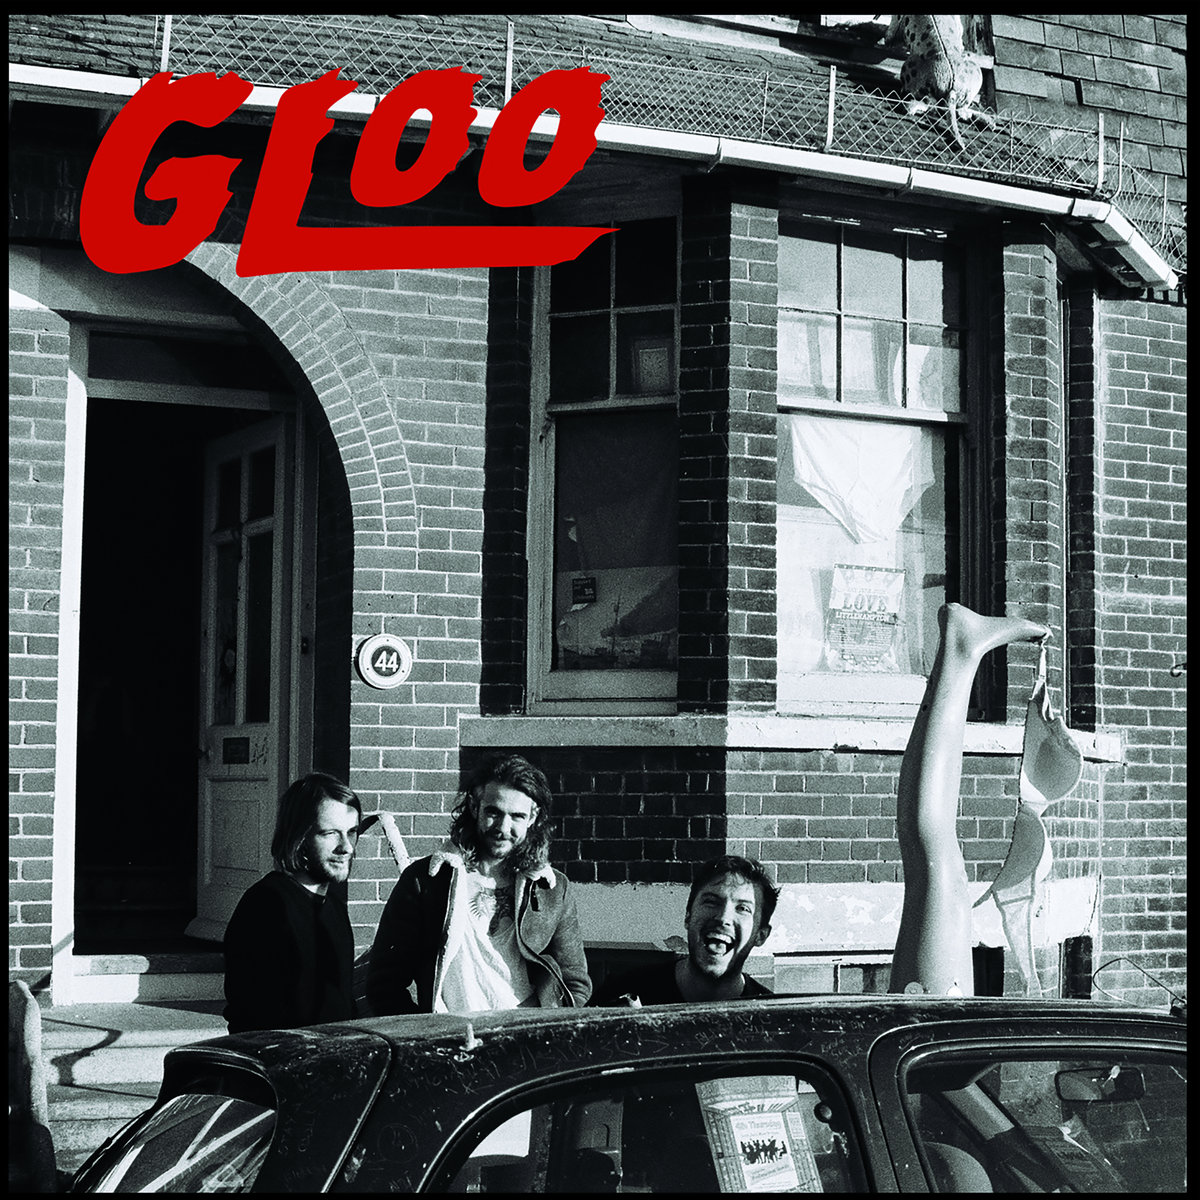 gloo-a-pathetic-youth-kurz-und-knackig-album-review